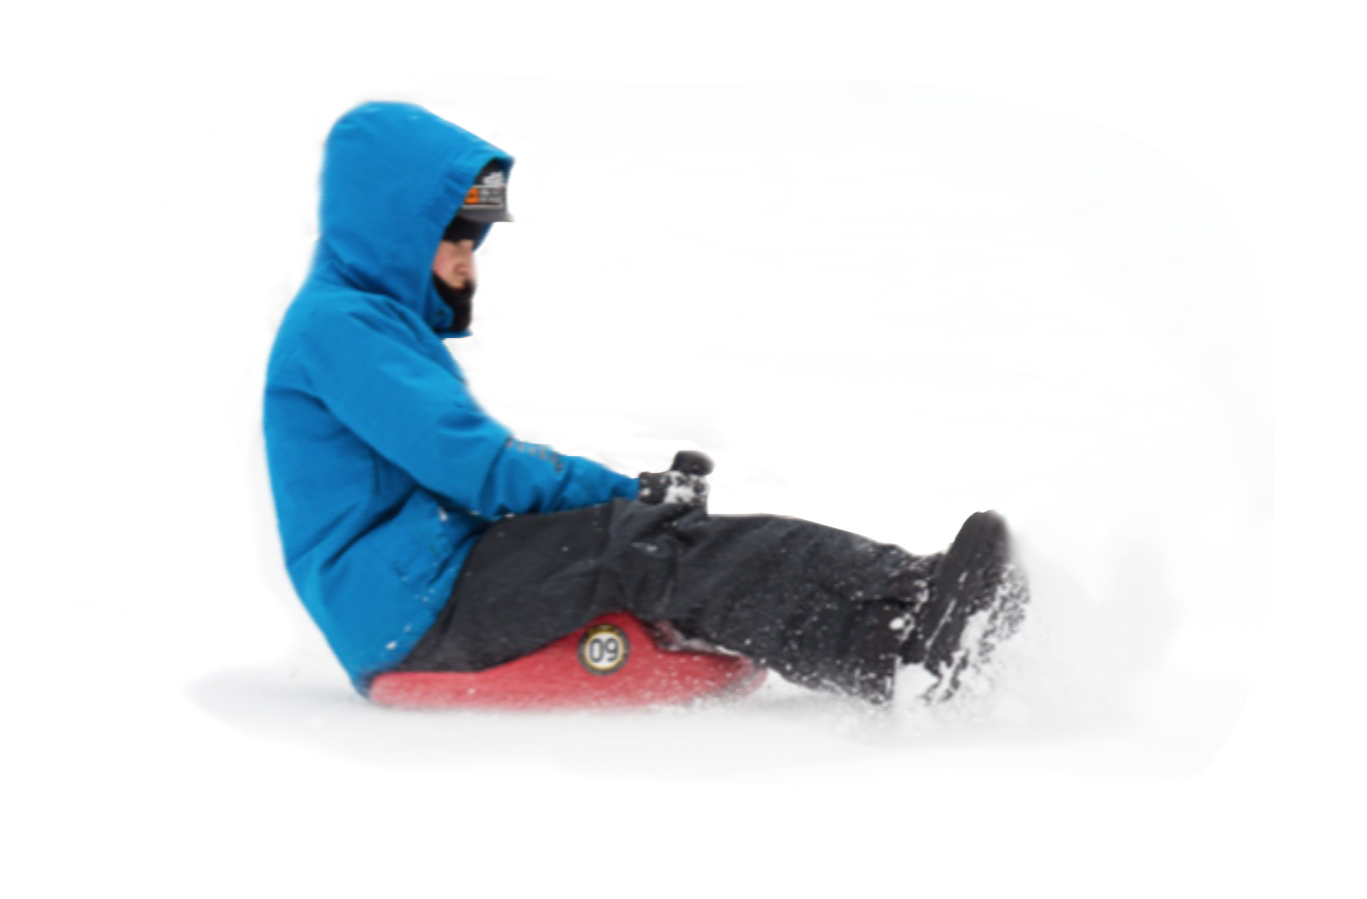 Feet First Design - Take on harder terrain knowing you can stop rapidly and safely!